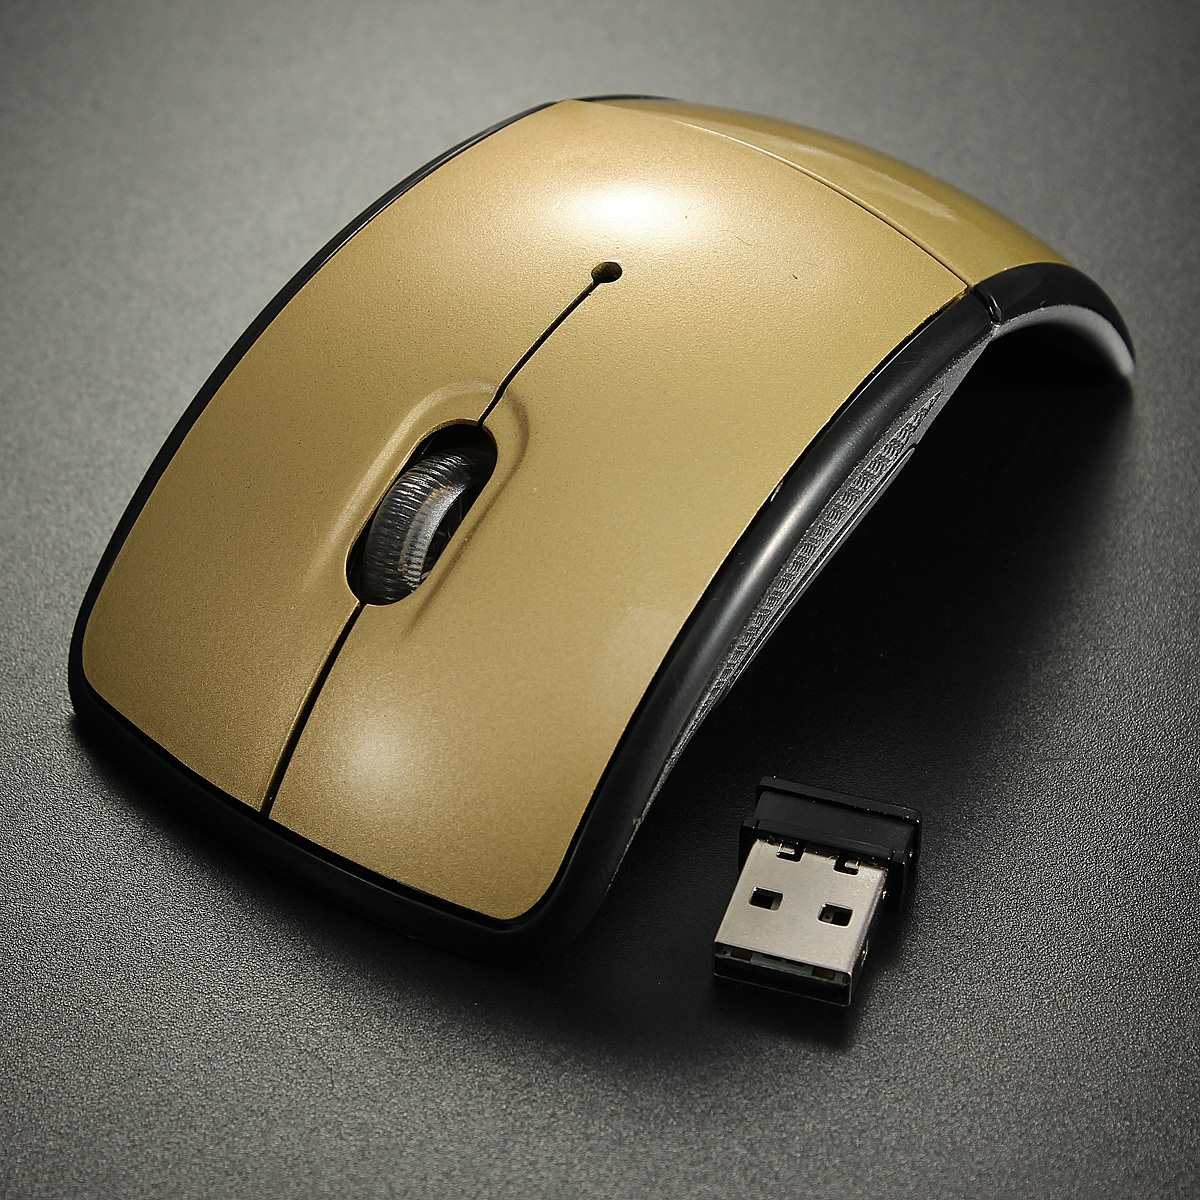 Gold2.4GHz Arc Touch Wireless Mouse Slim Foldable Flat Mouse Ultrathin Computer folding Mice Touch Mouse(China (Mainland))